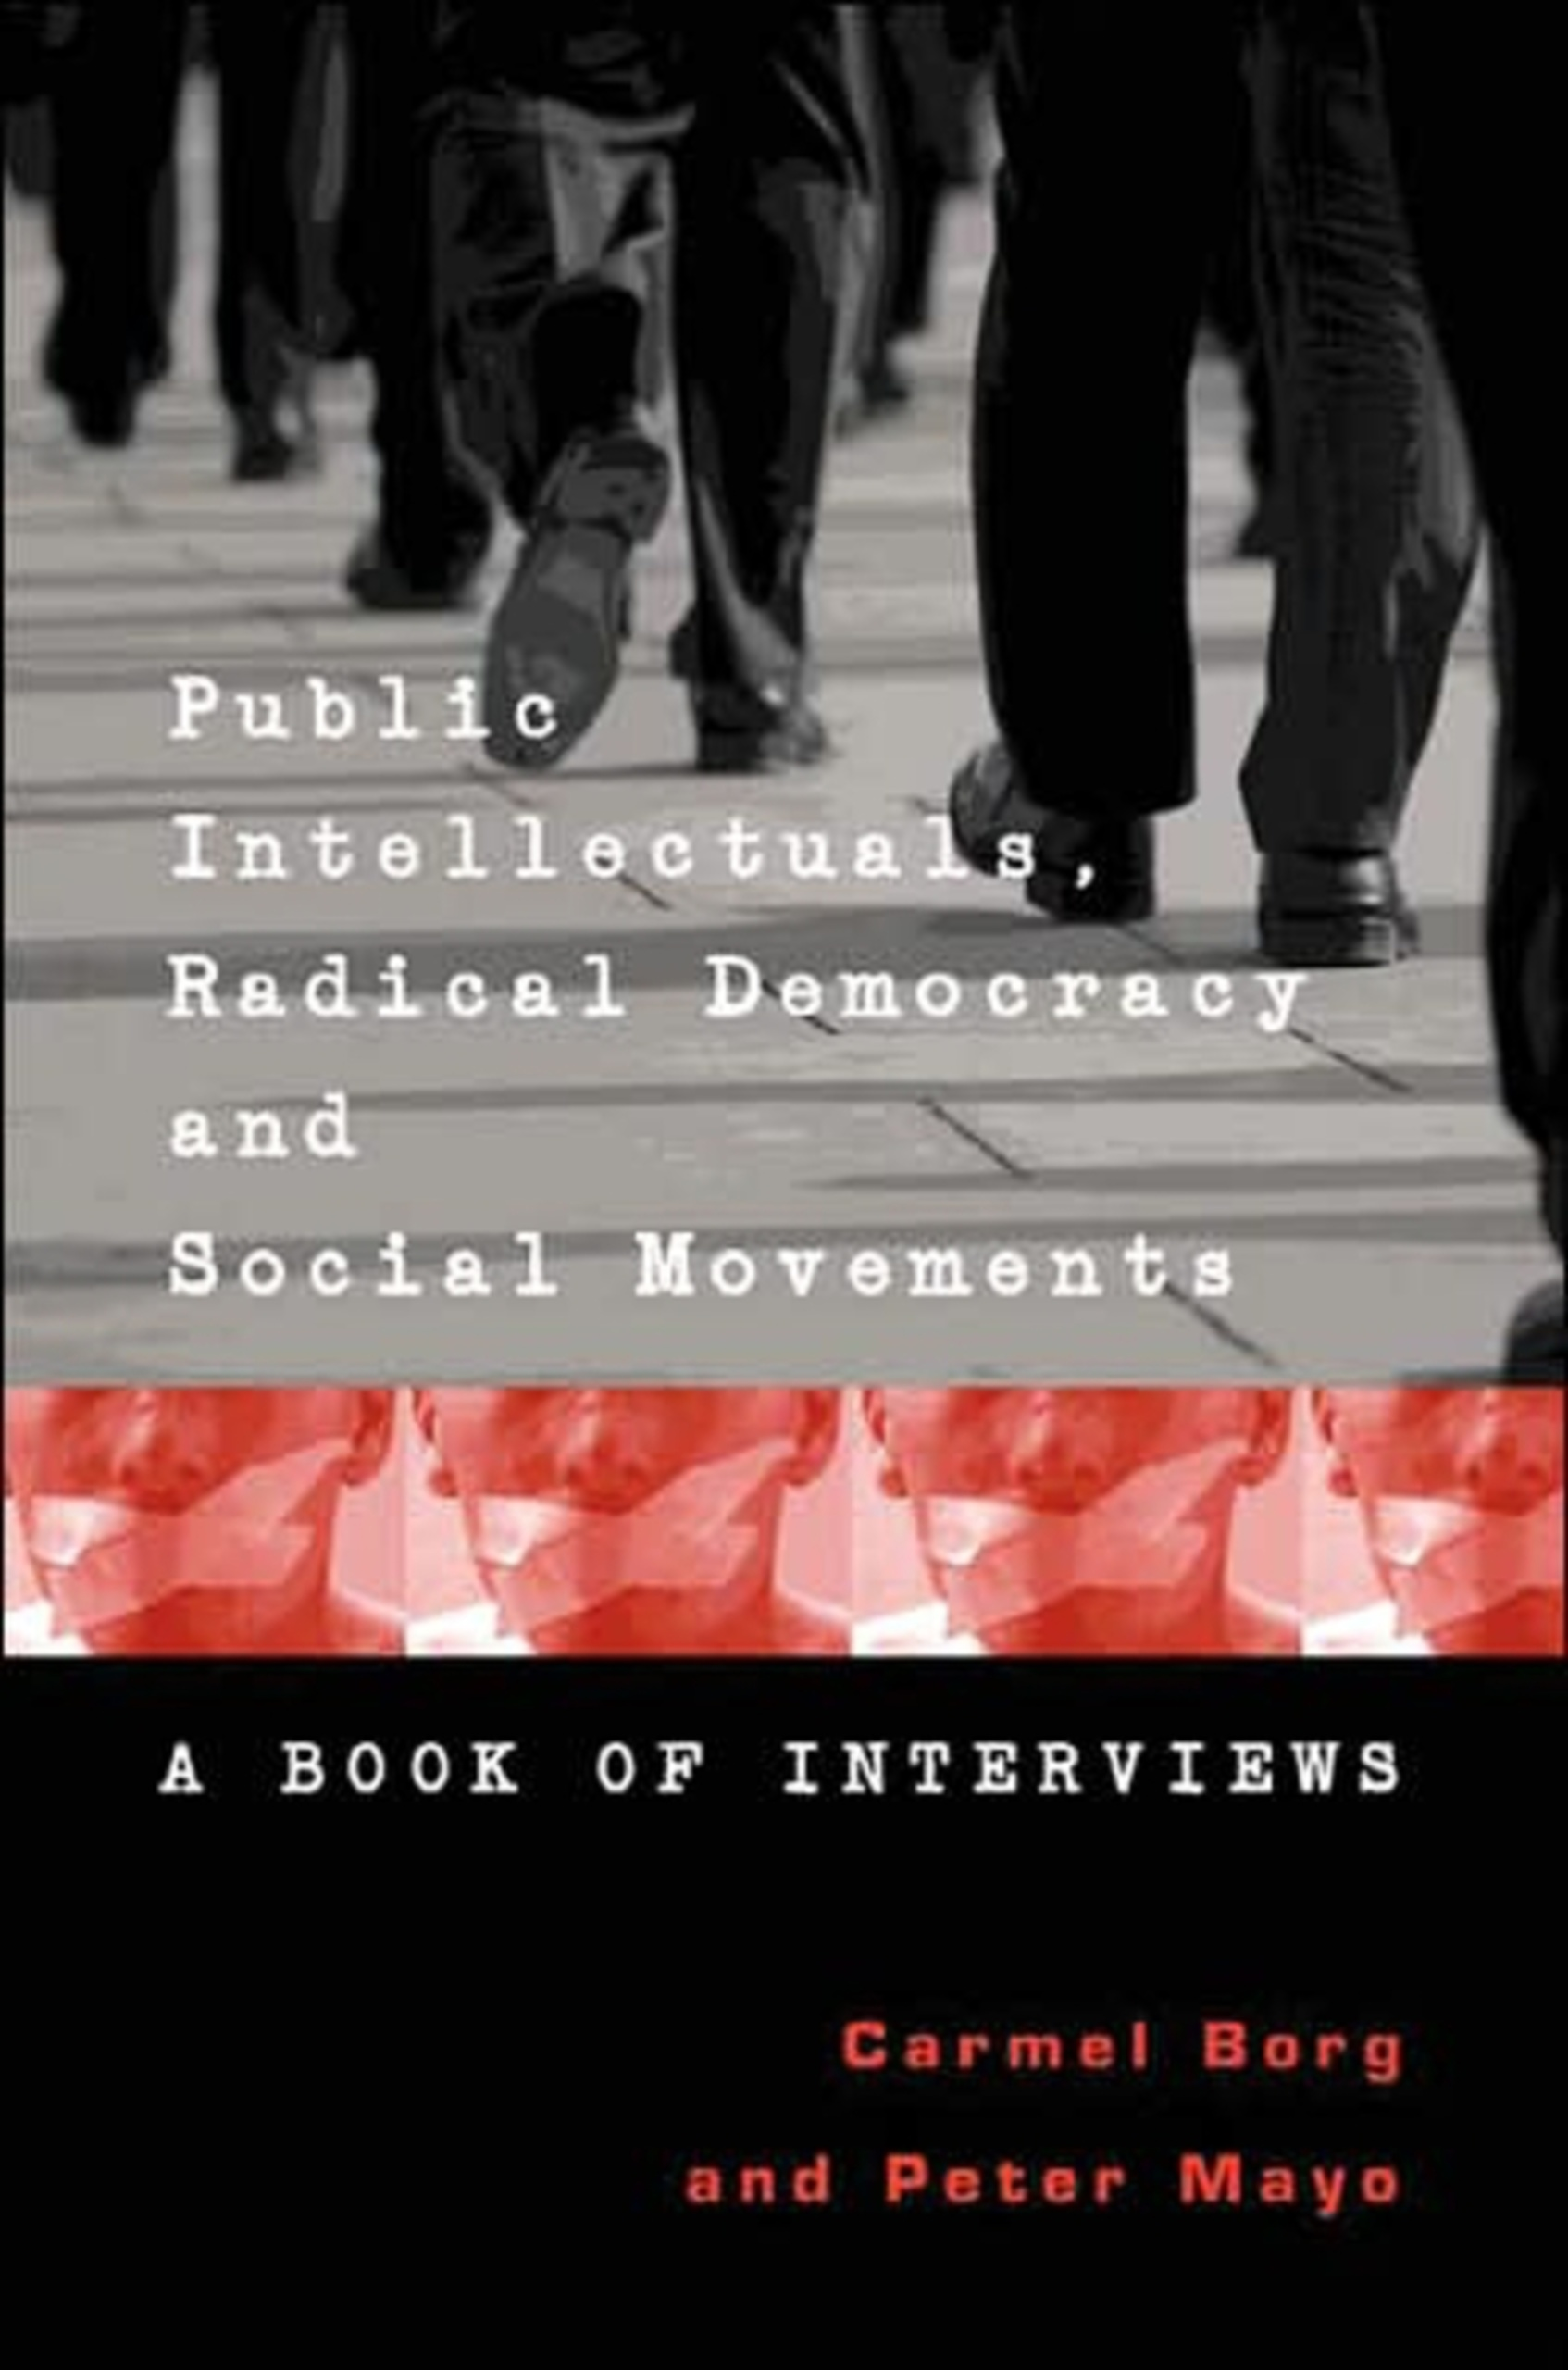 Title: Public Intellectuals, Radical Democracy and Social Movements